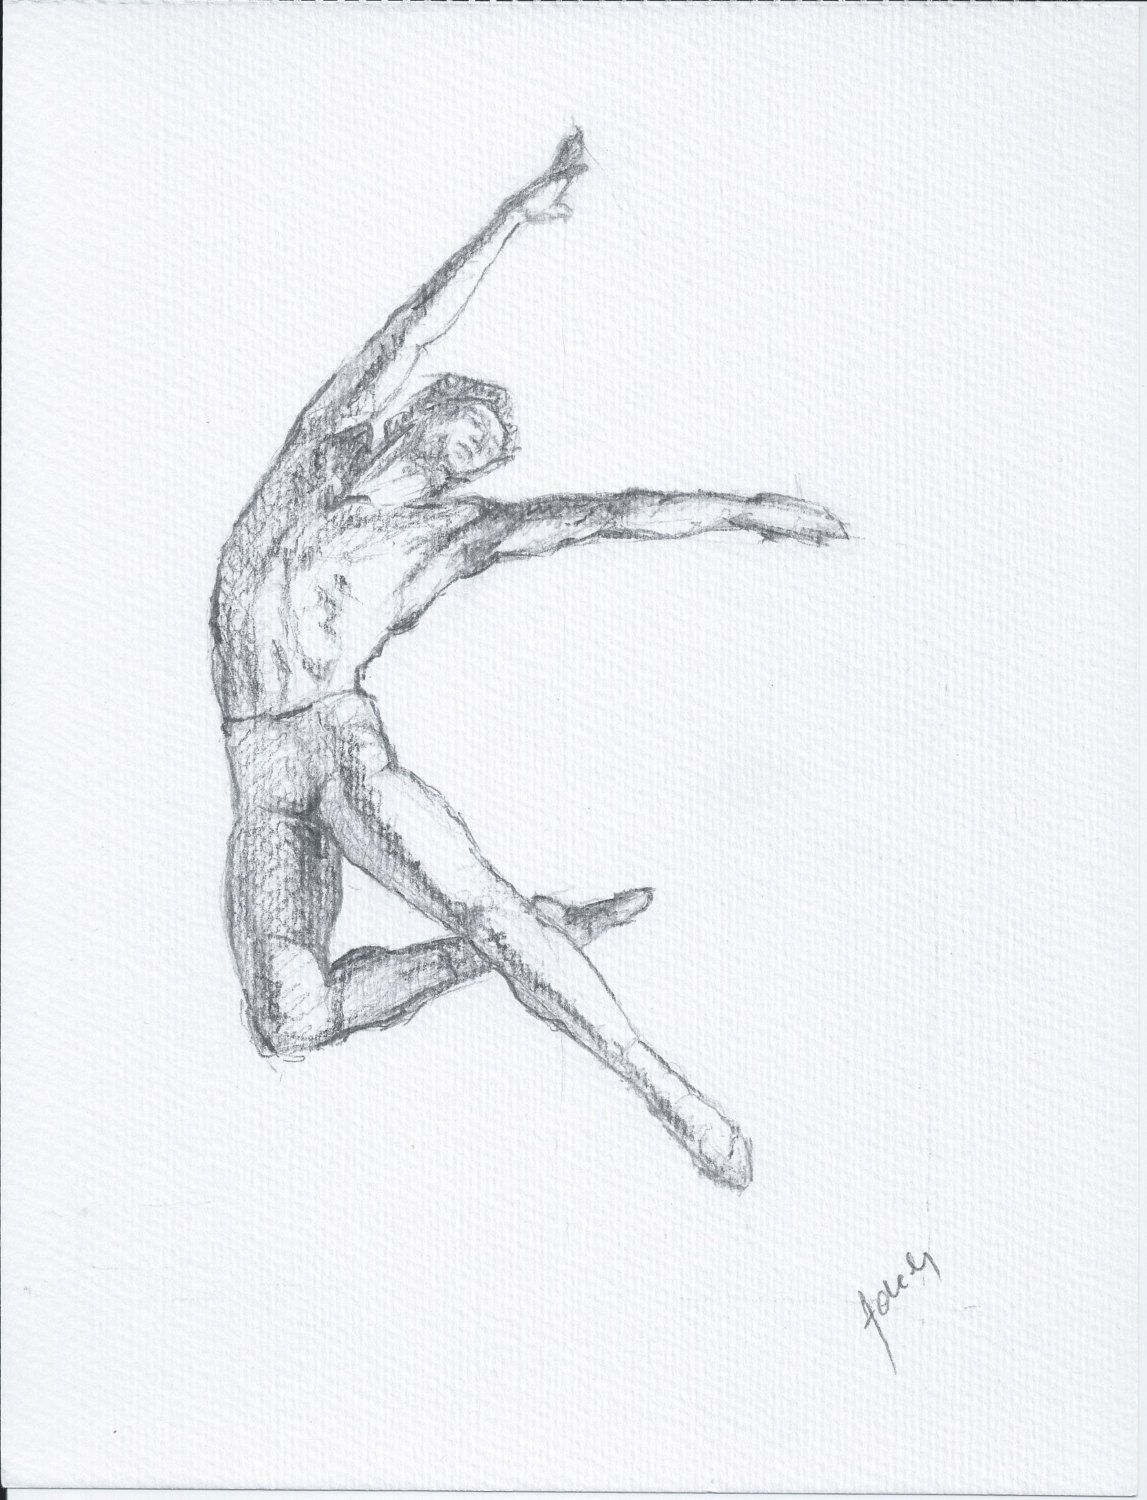 Sold male ballet dancer original pencil drawing a4 by whatsnew on etsy https